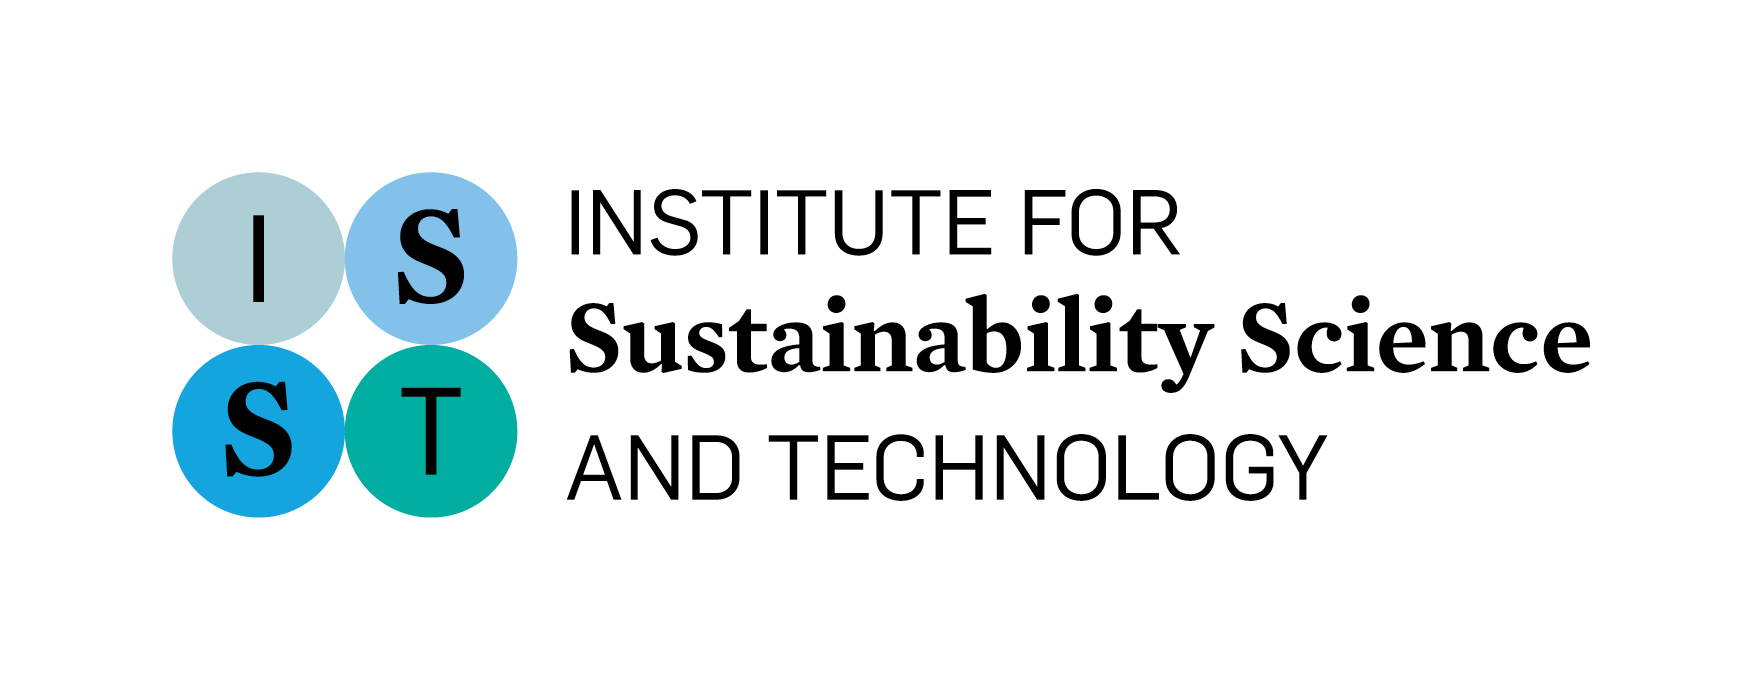 Institute for Sustainability Science and Technology, (abre en ventana nueva)